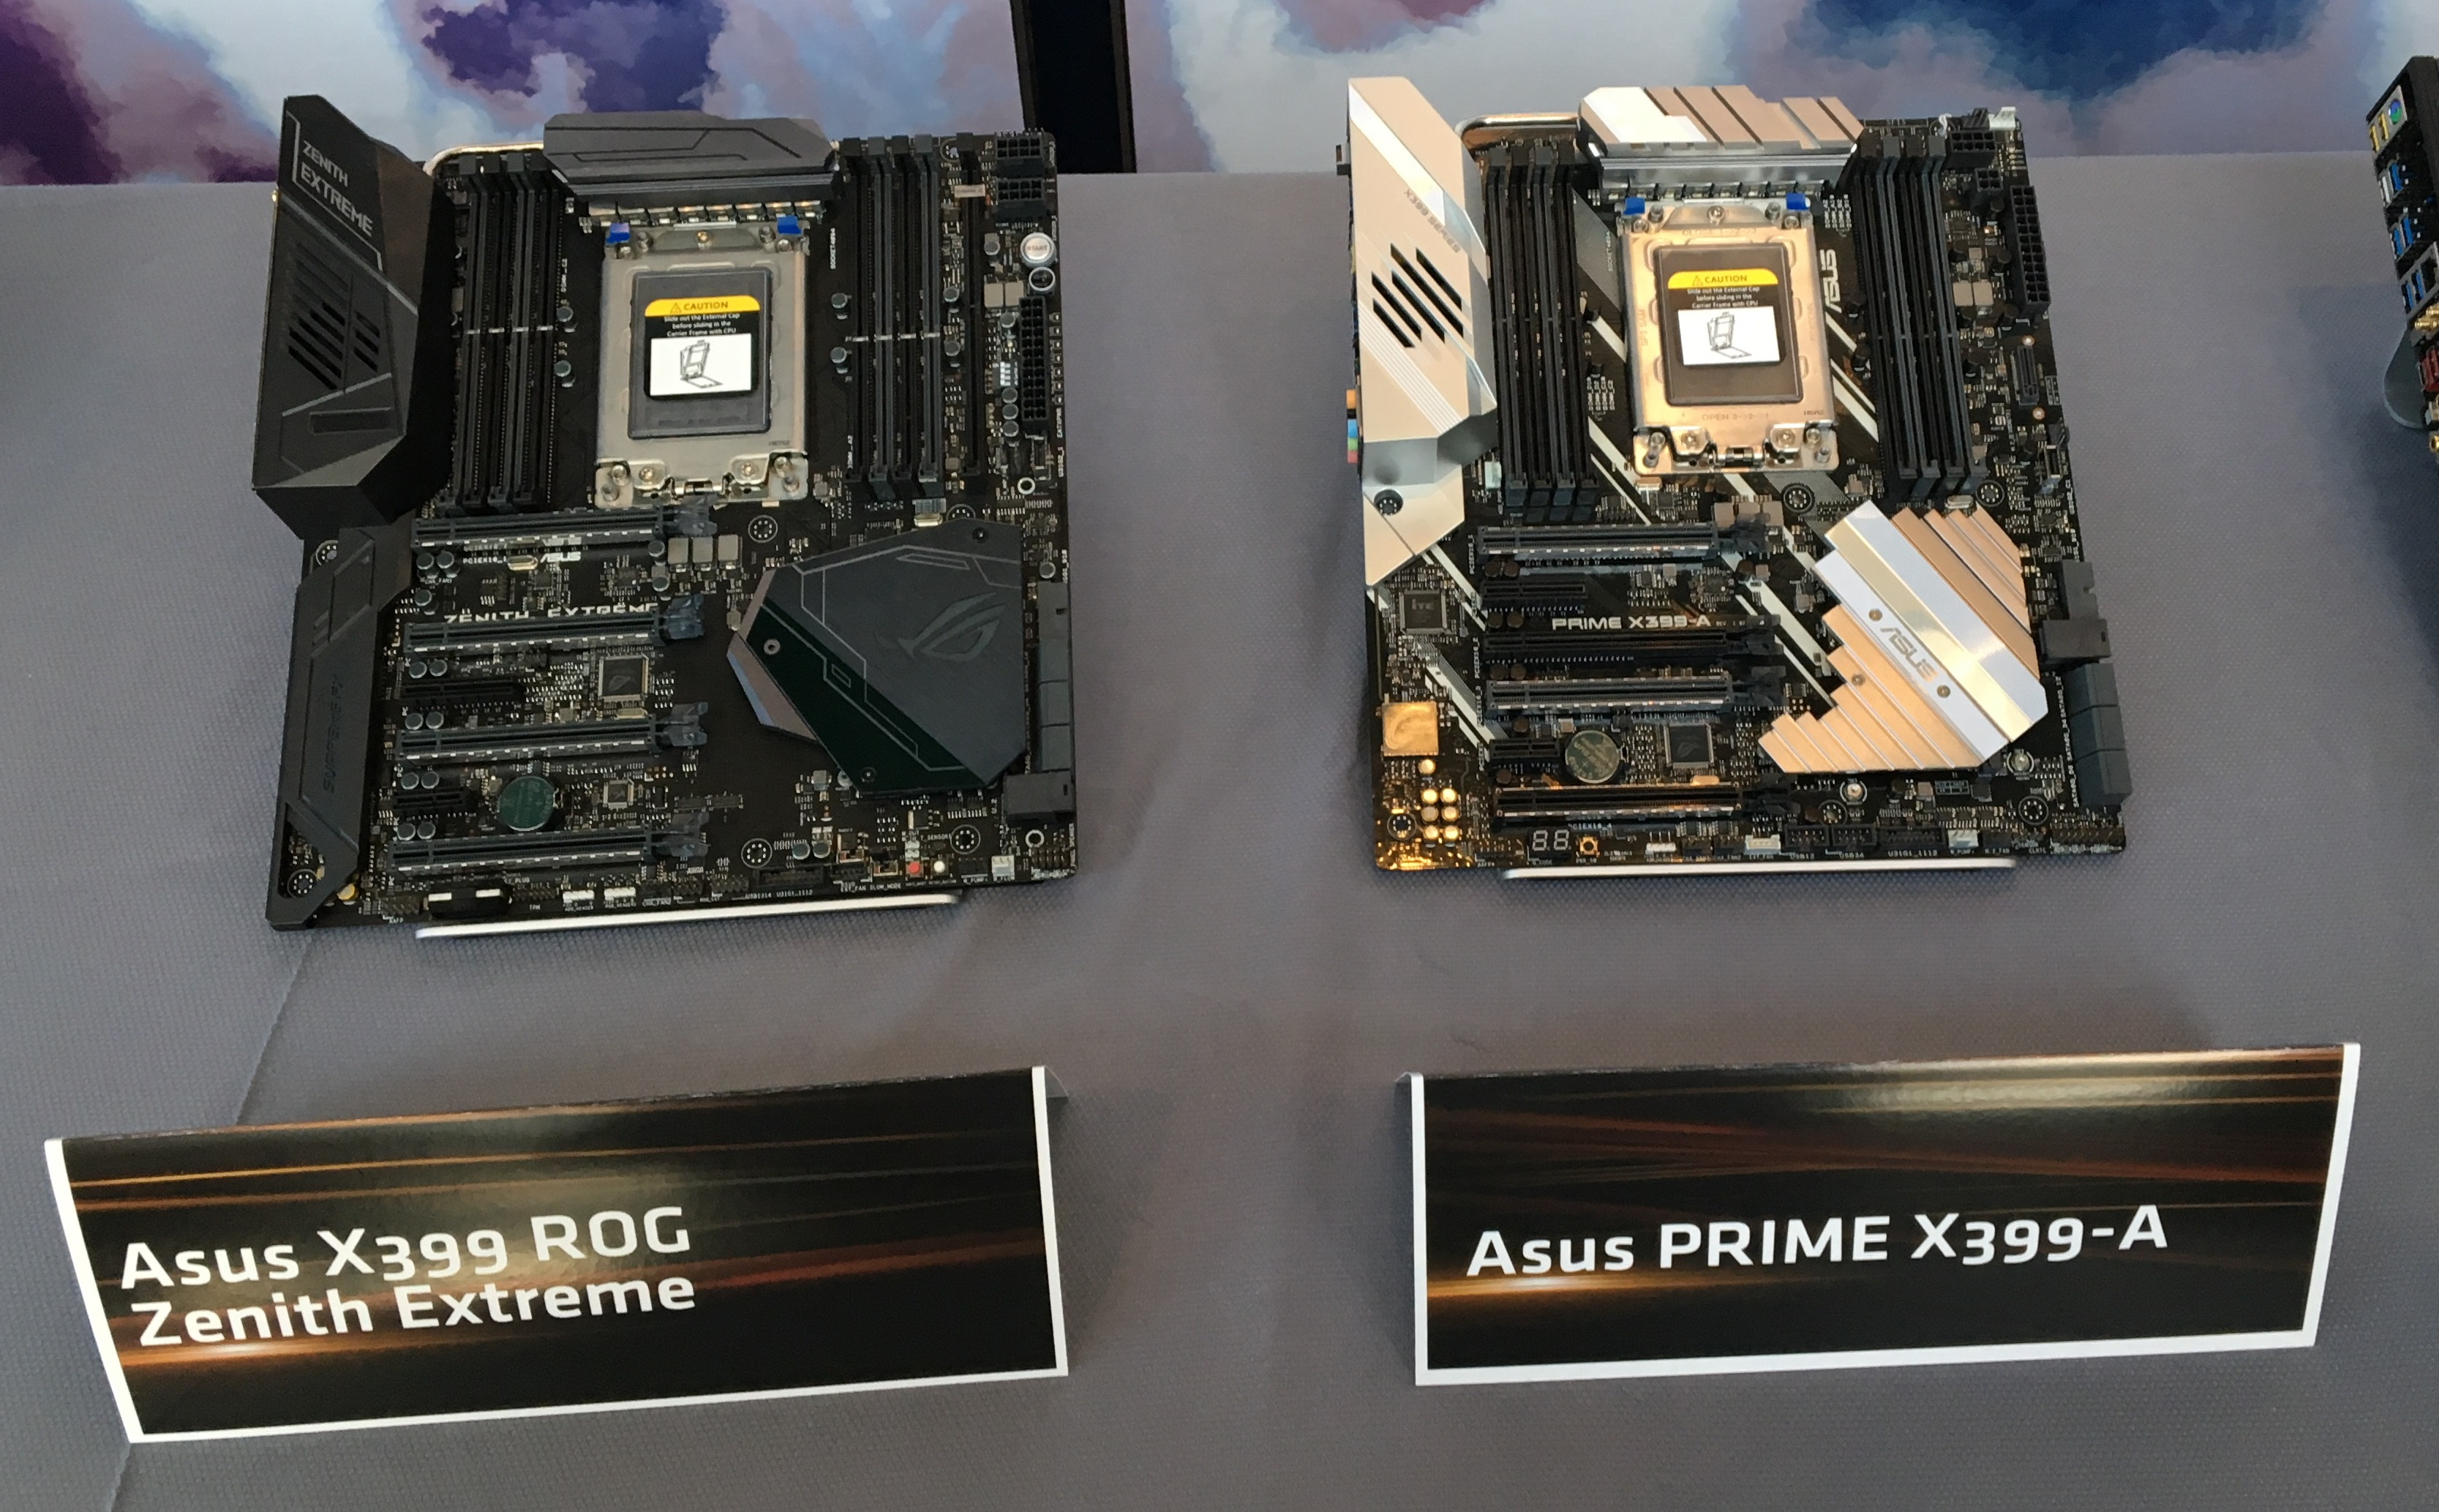 AMD Threadripper 1950X and 1920X Out August 10th, New Eight